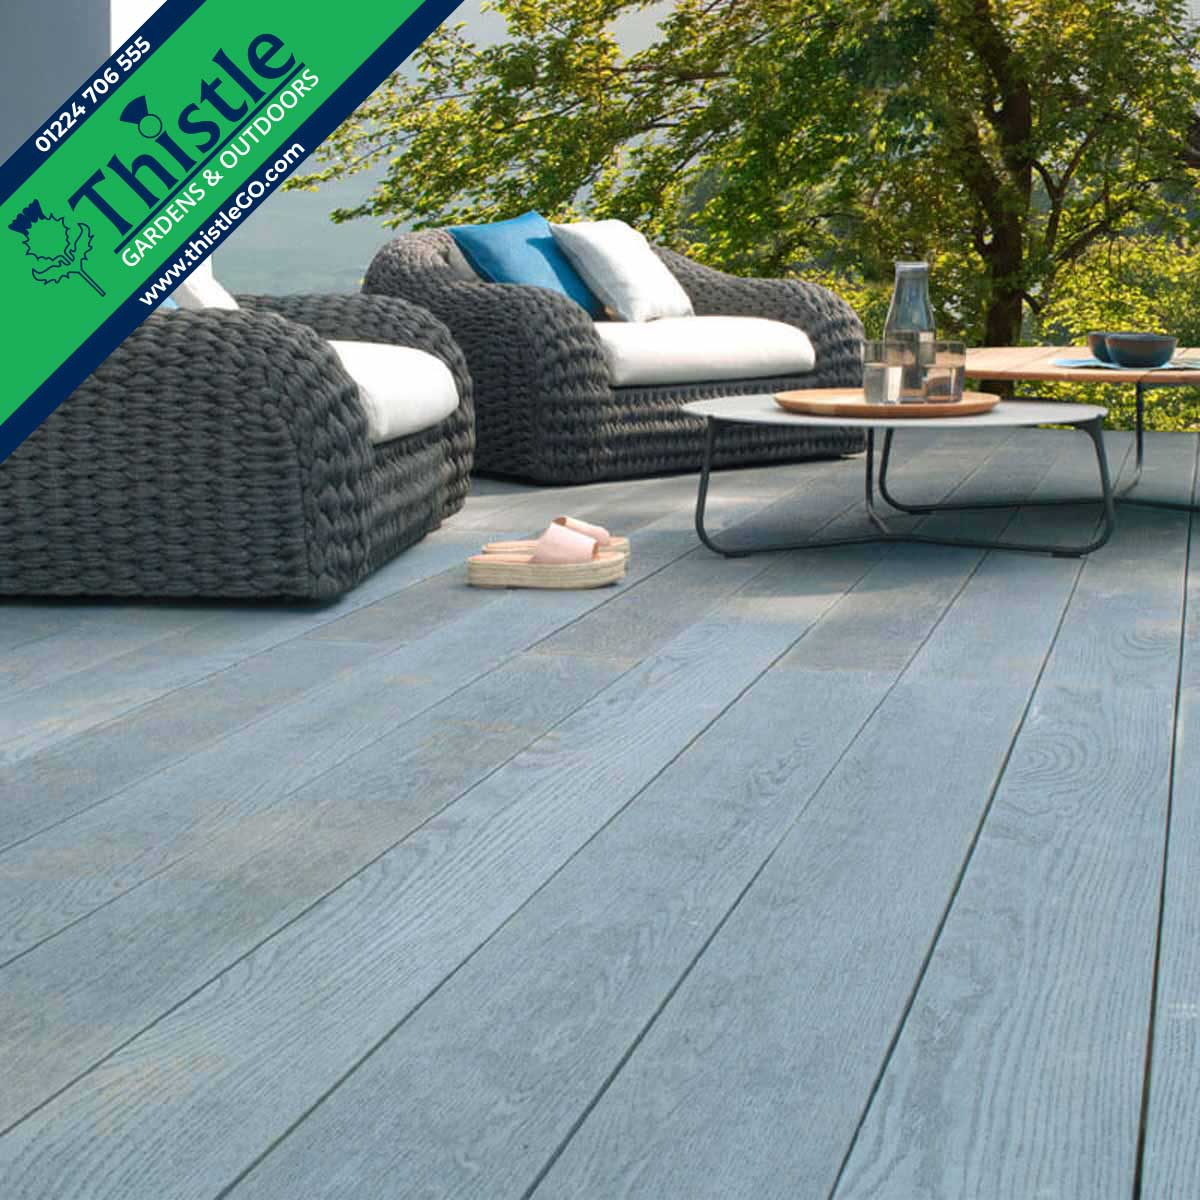 Enhanced Grain Composite Decking in Brushed Basalt